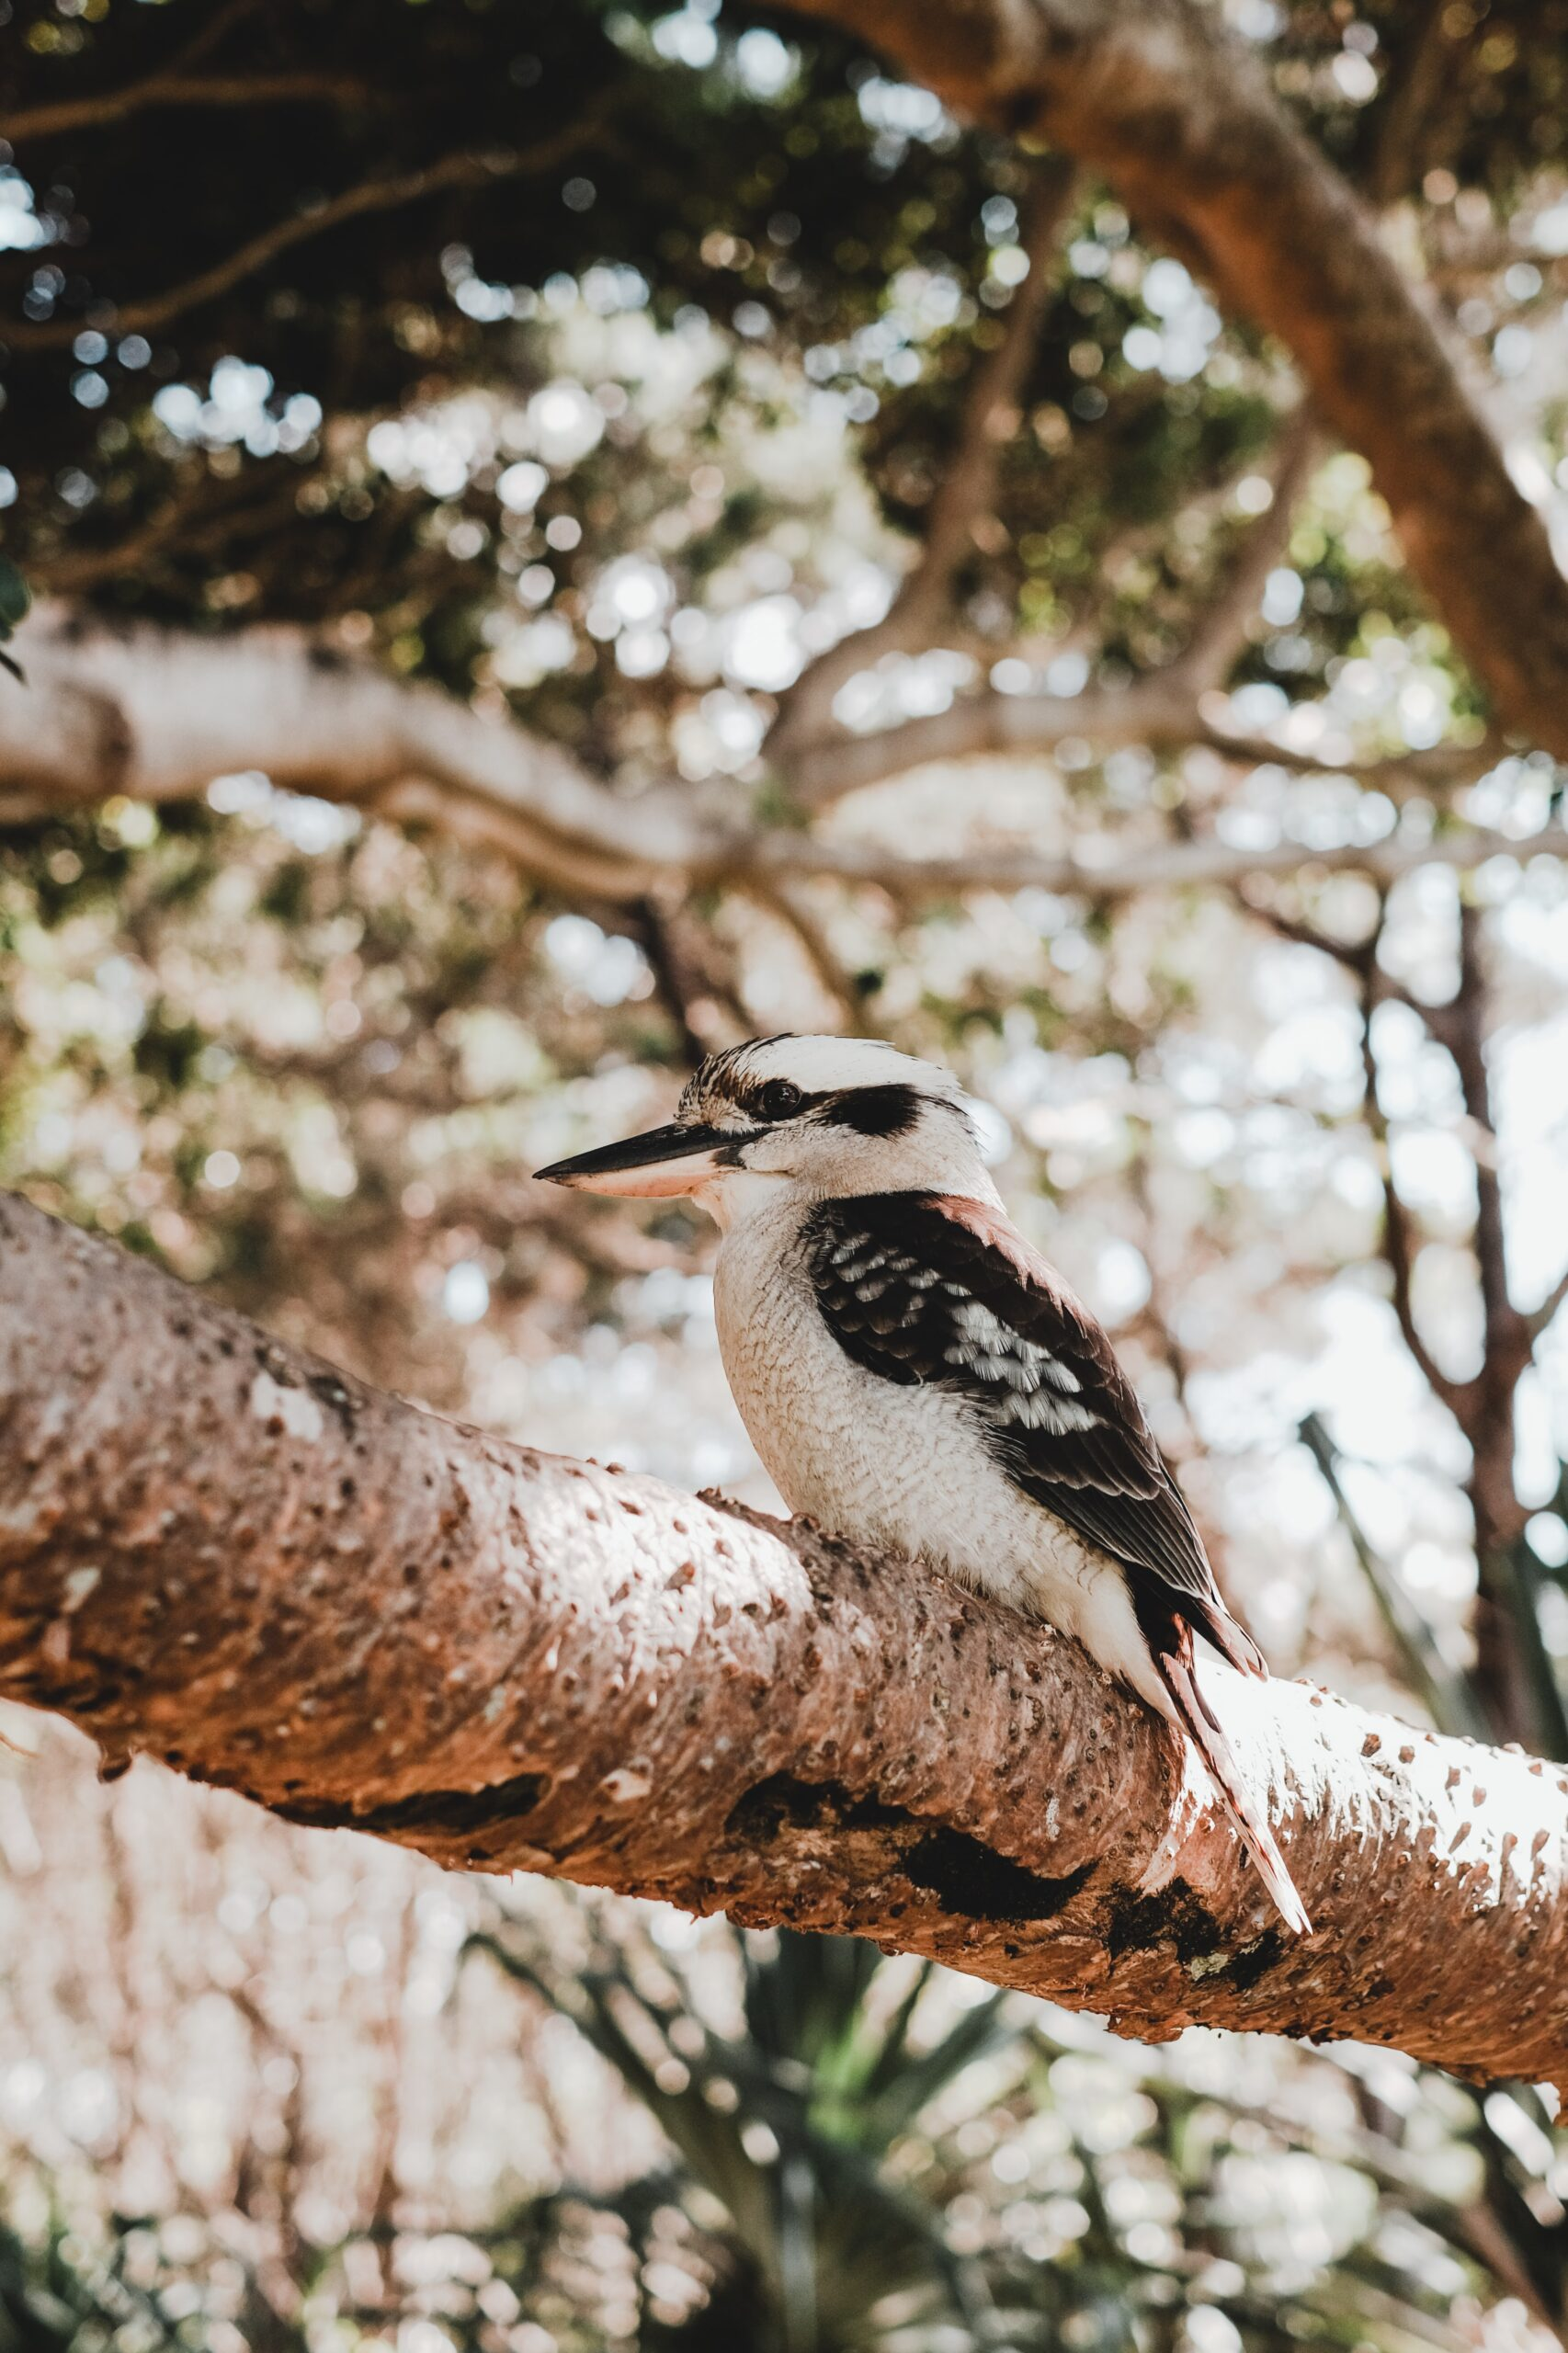 A kookaburra perched on a tree branch looking to the left